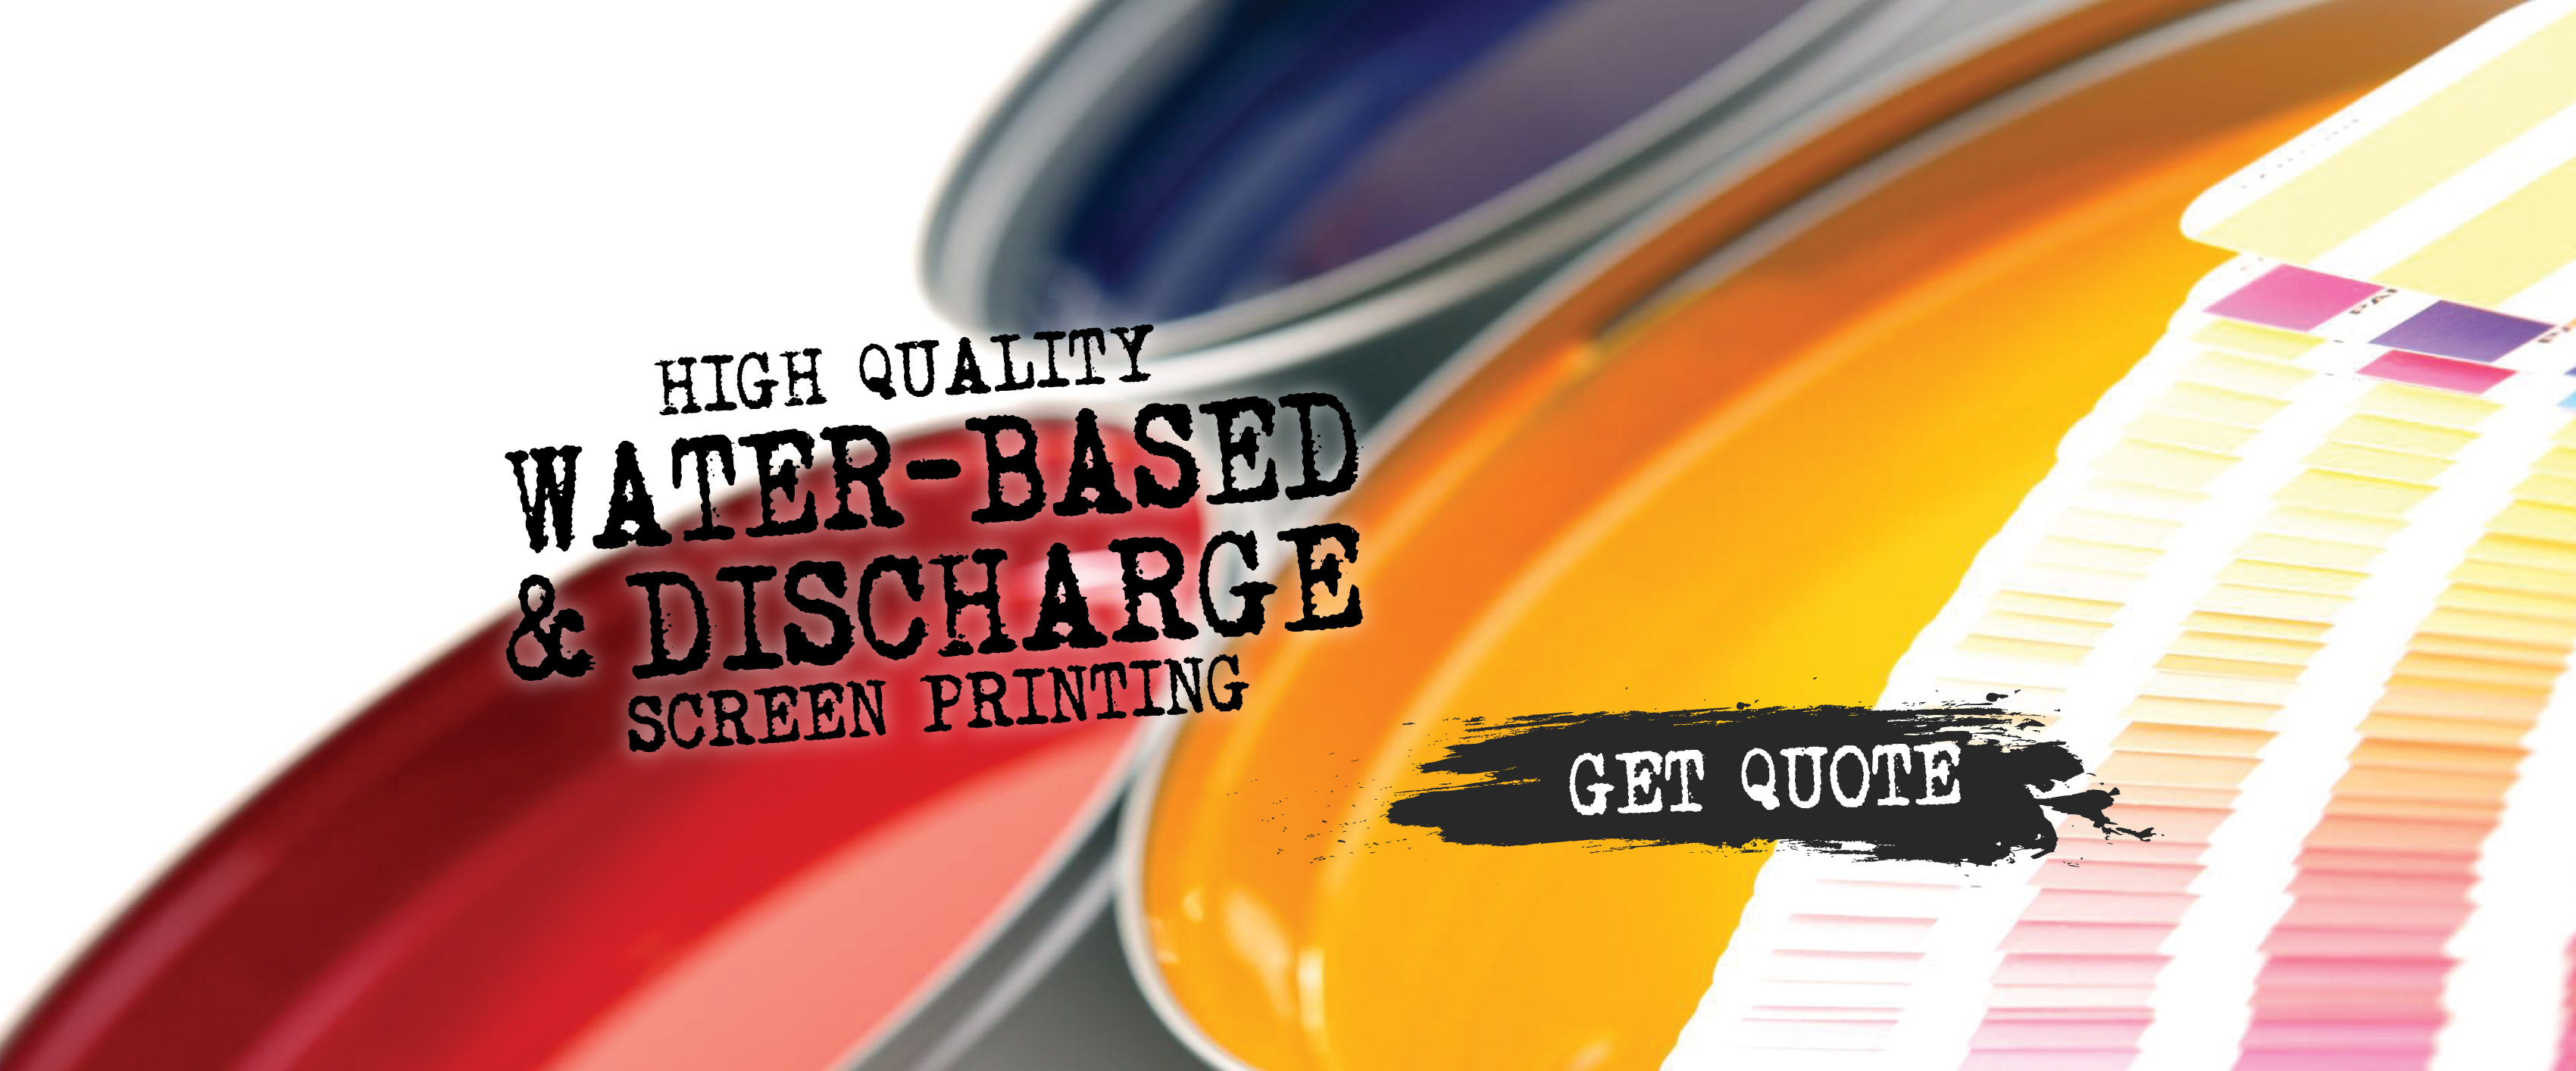 WATERBASED SCREEN PRINTING ARIZONA